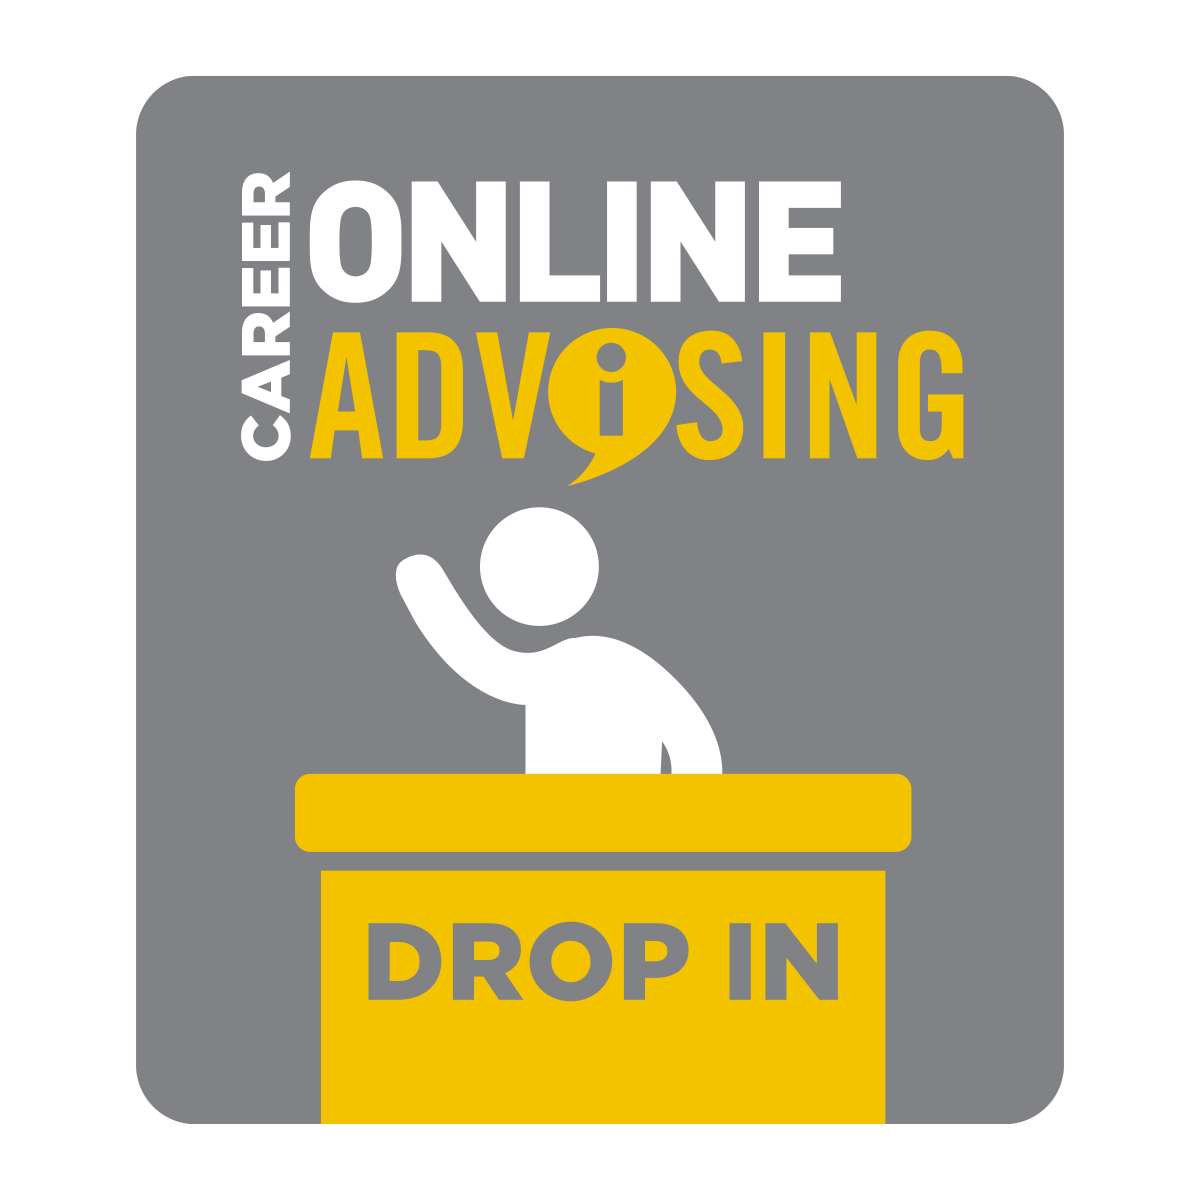 Icon with text: Career Online Advising Drop In. Stick figure sitting at desk.